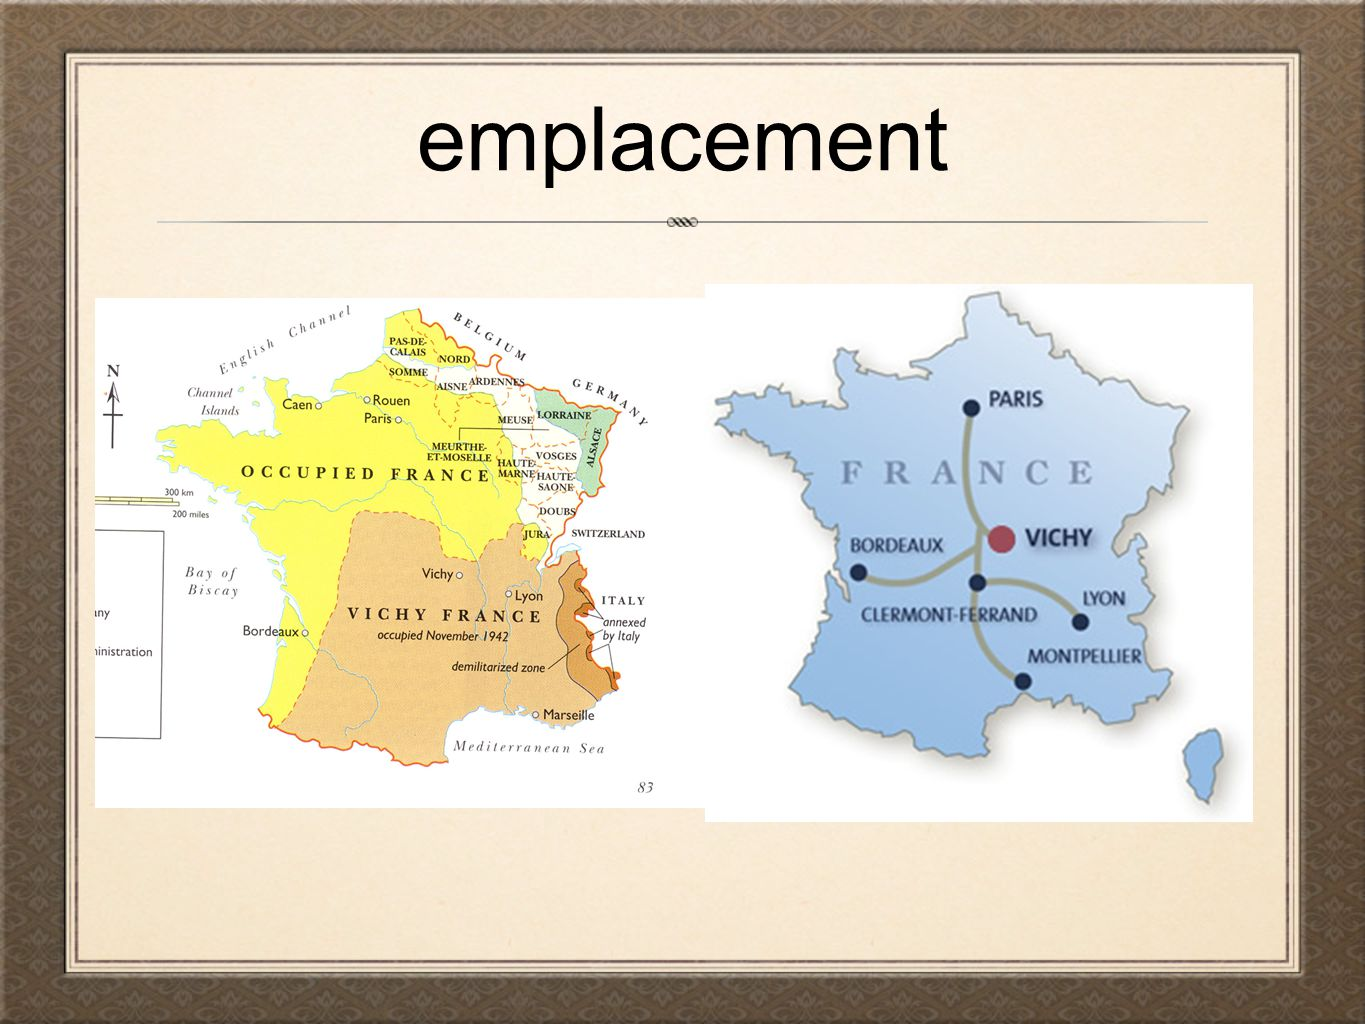 emplacement